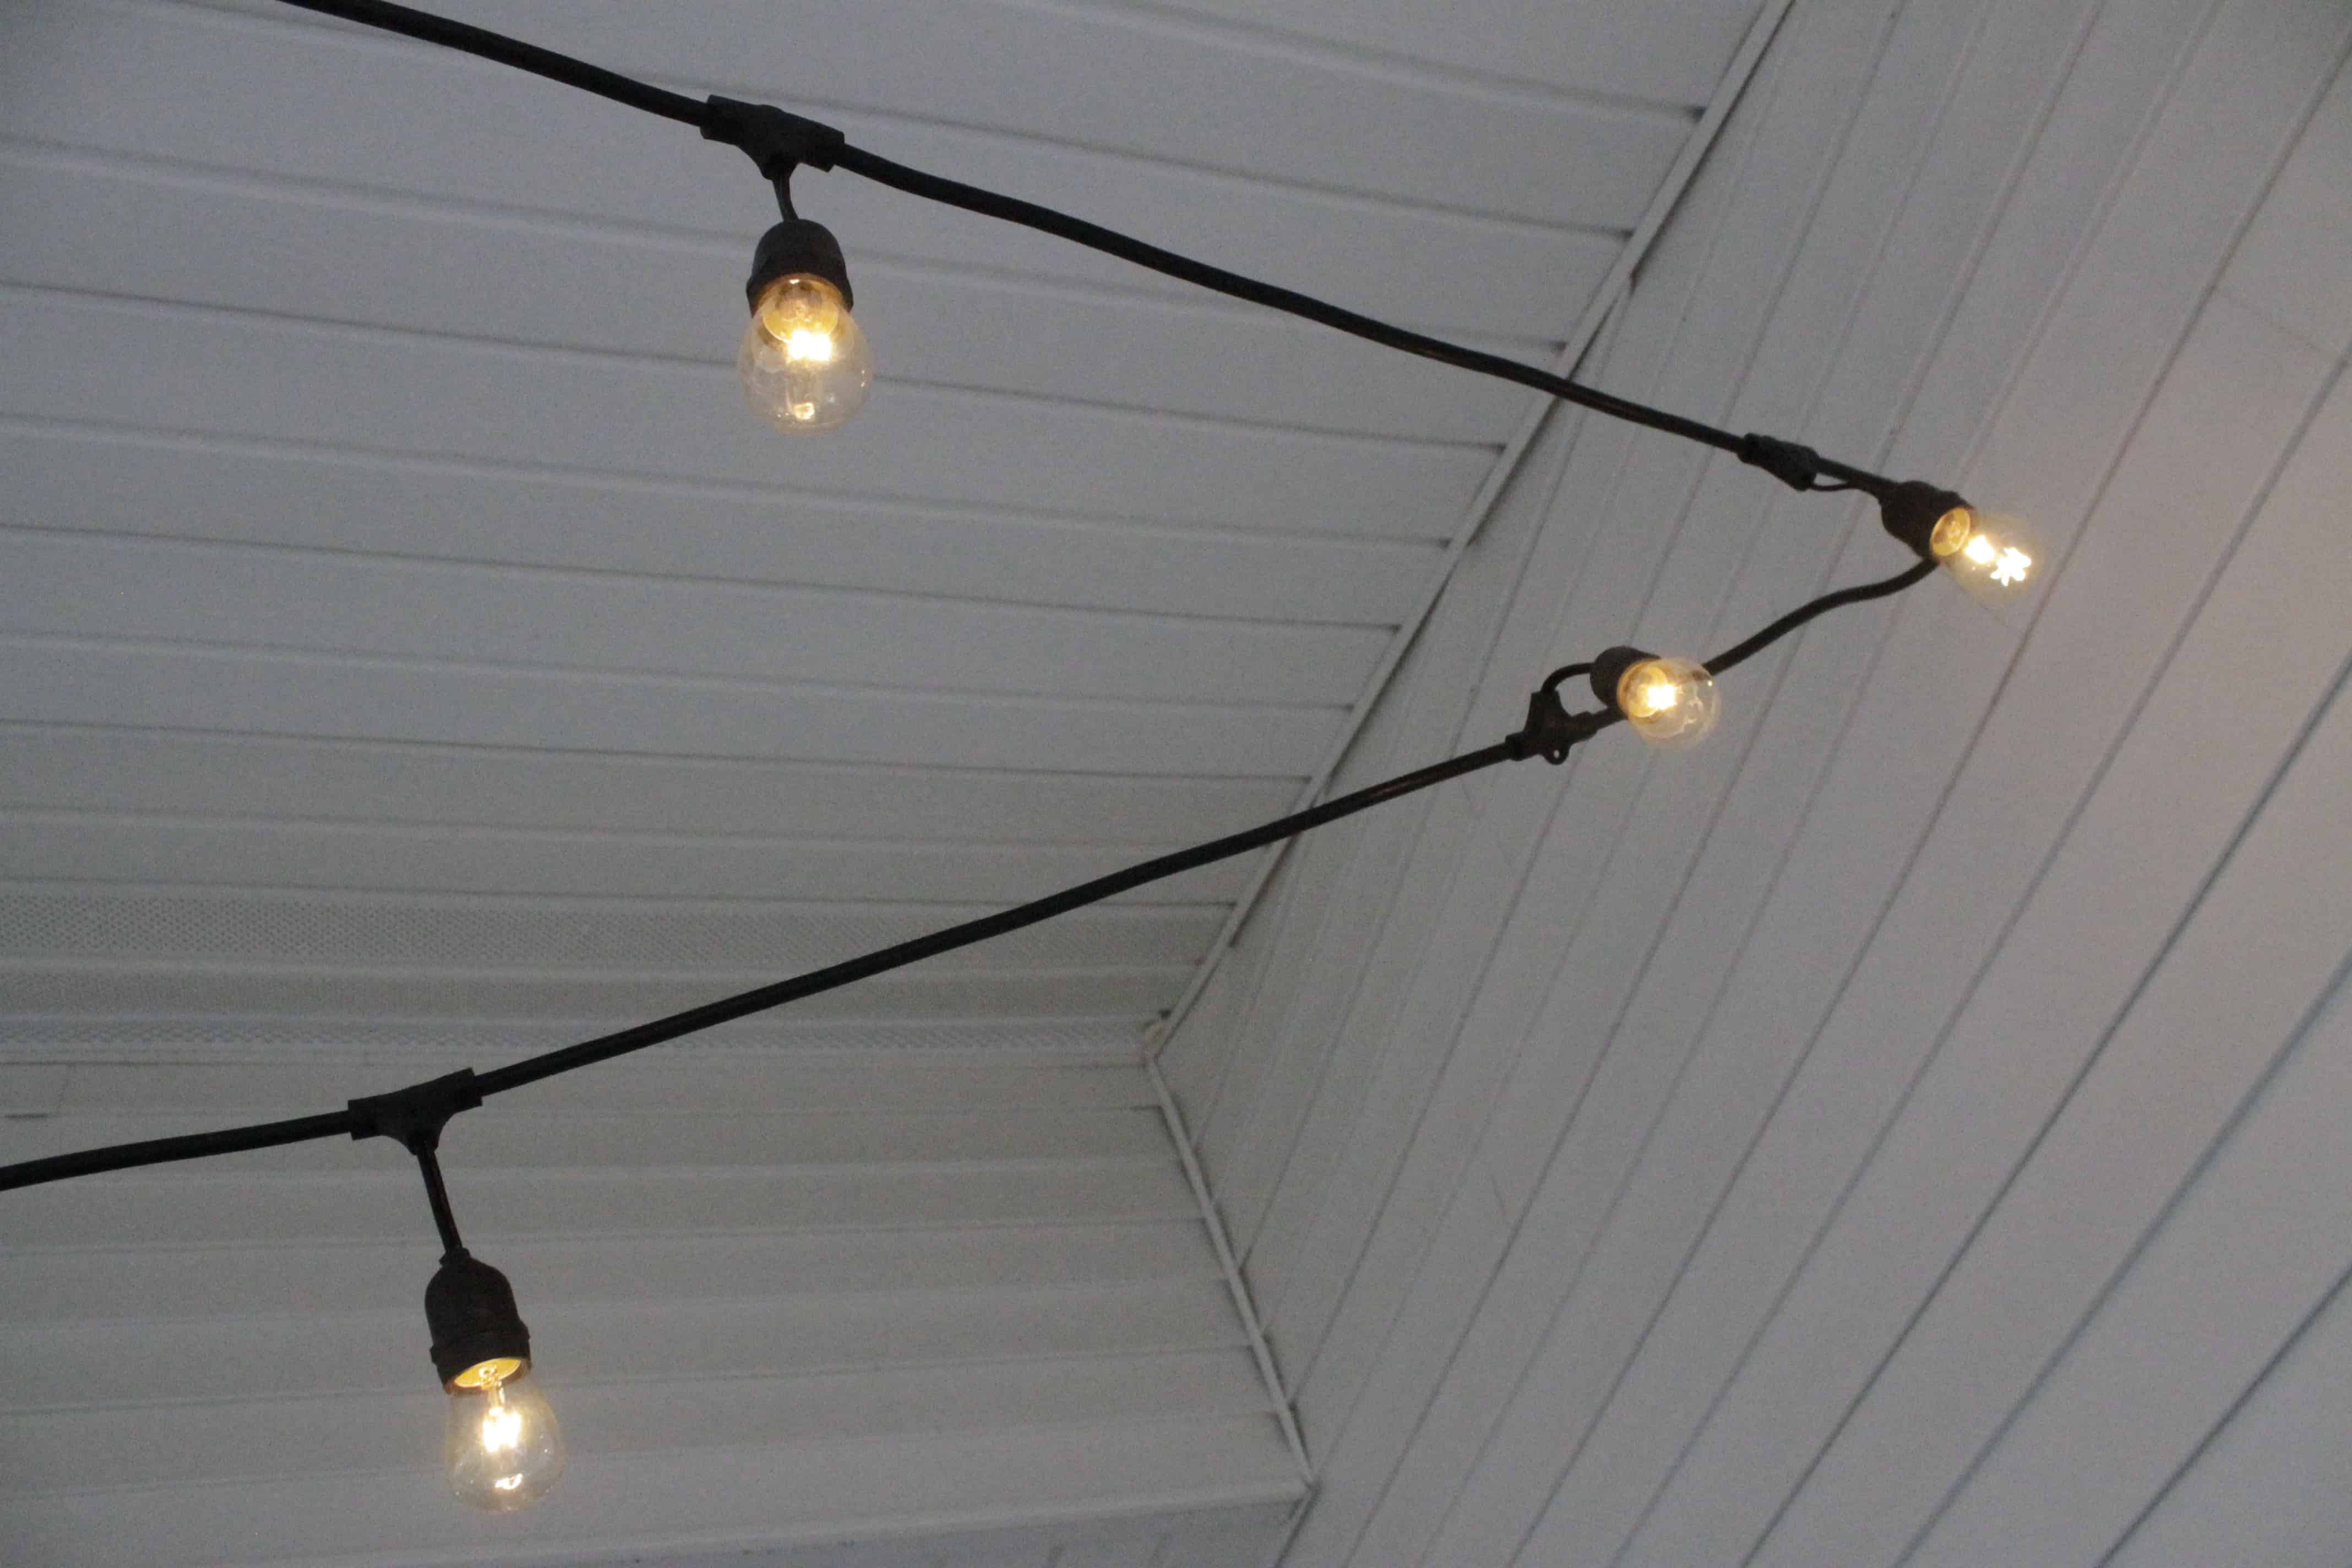 to hang string lights on a screened porch